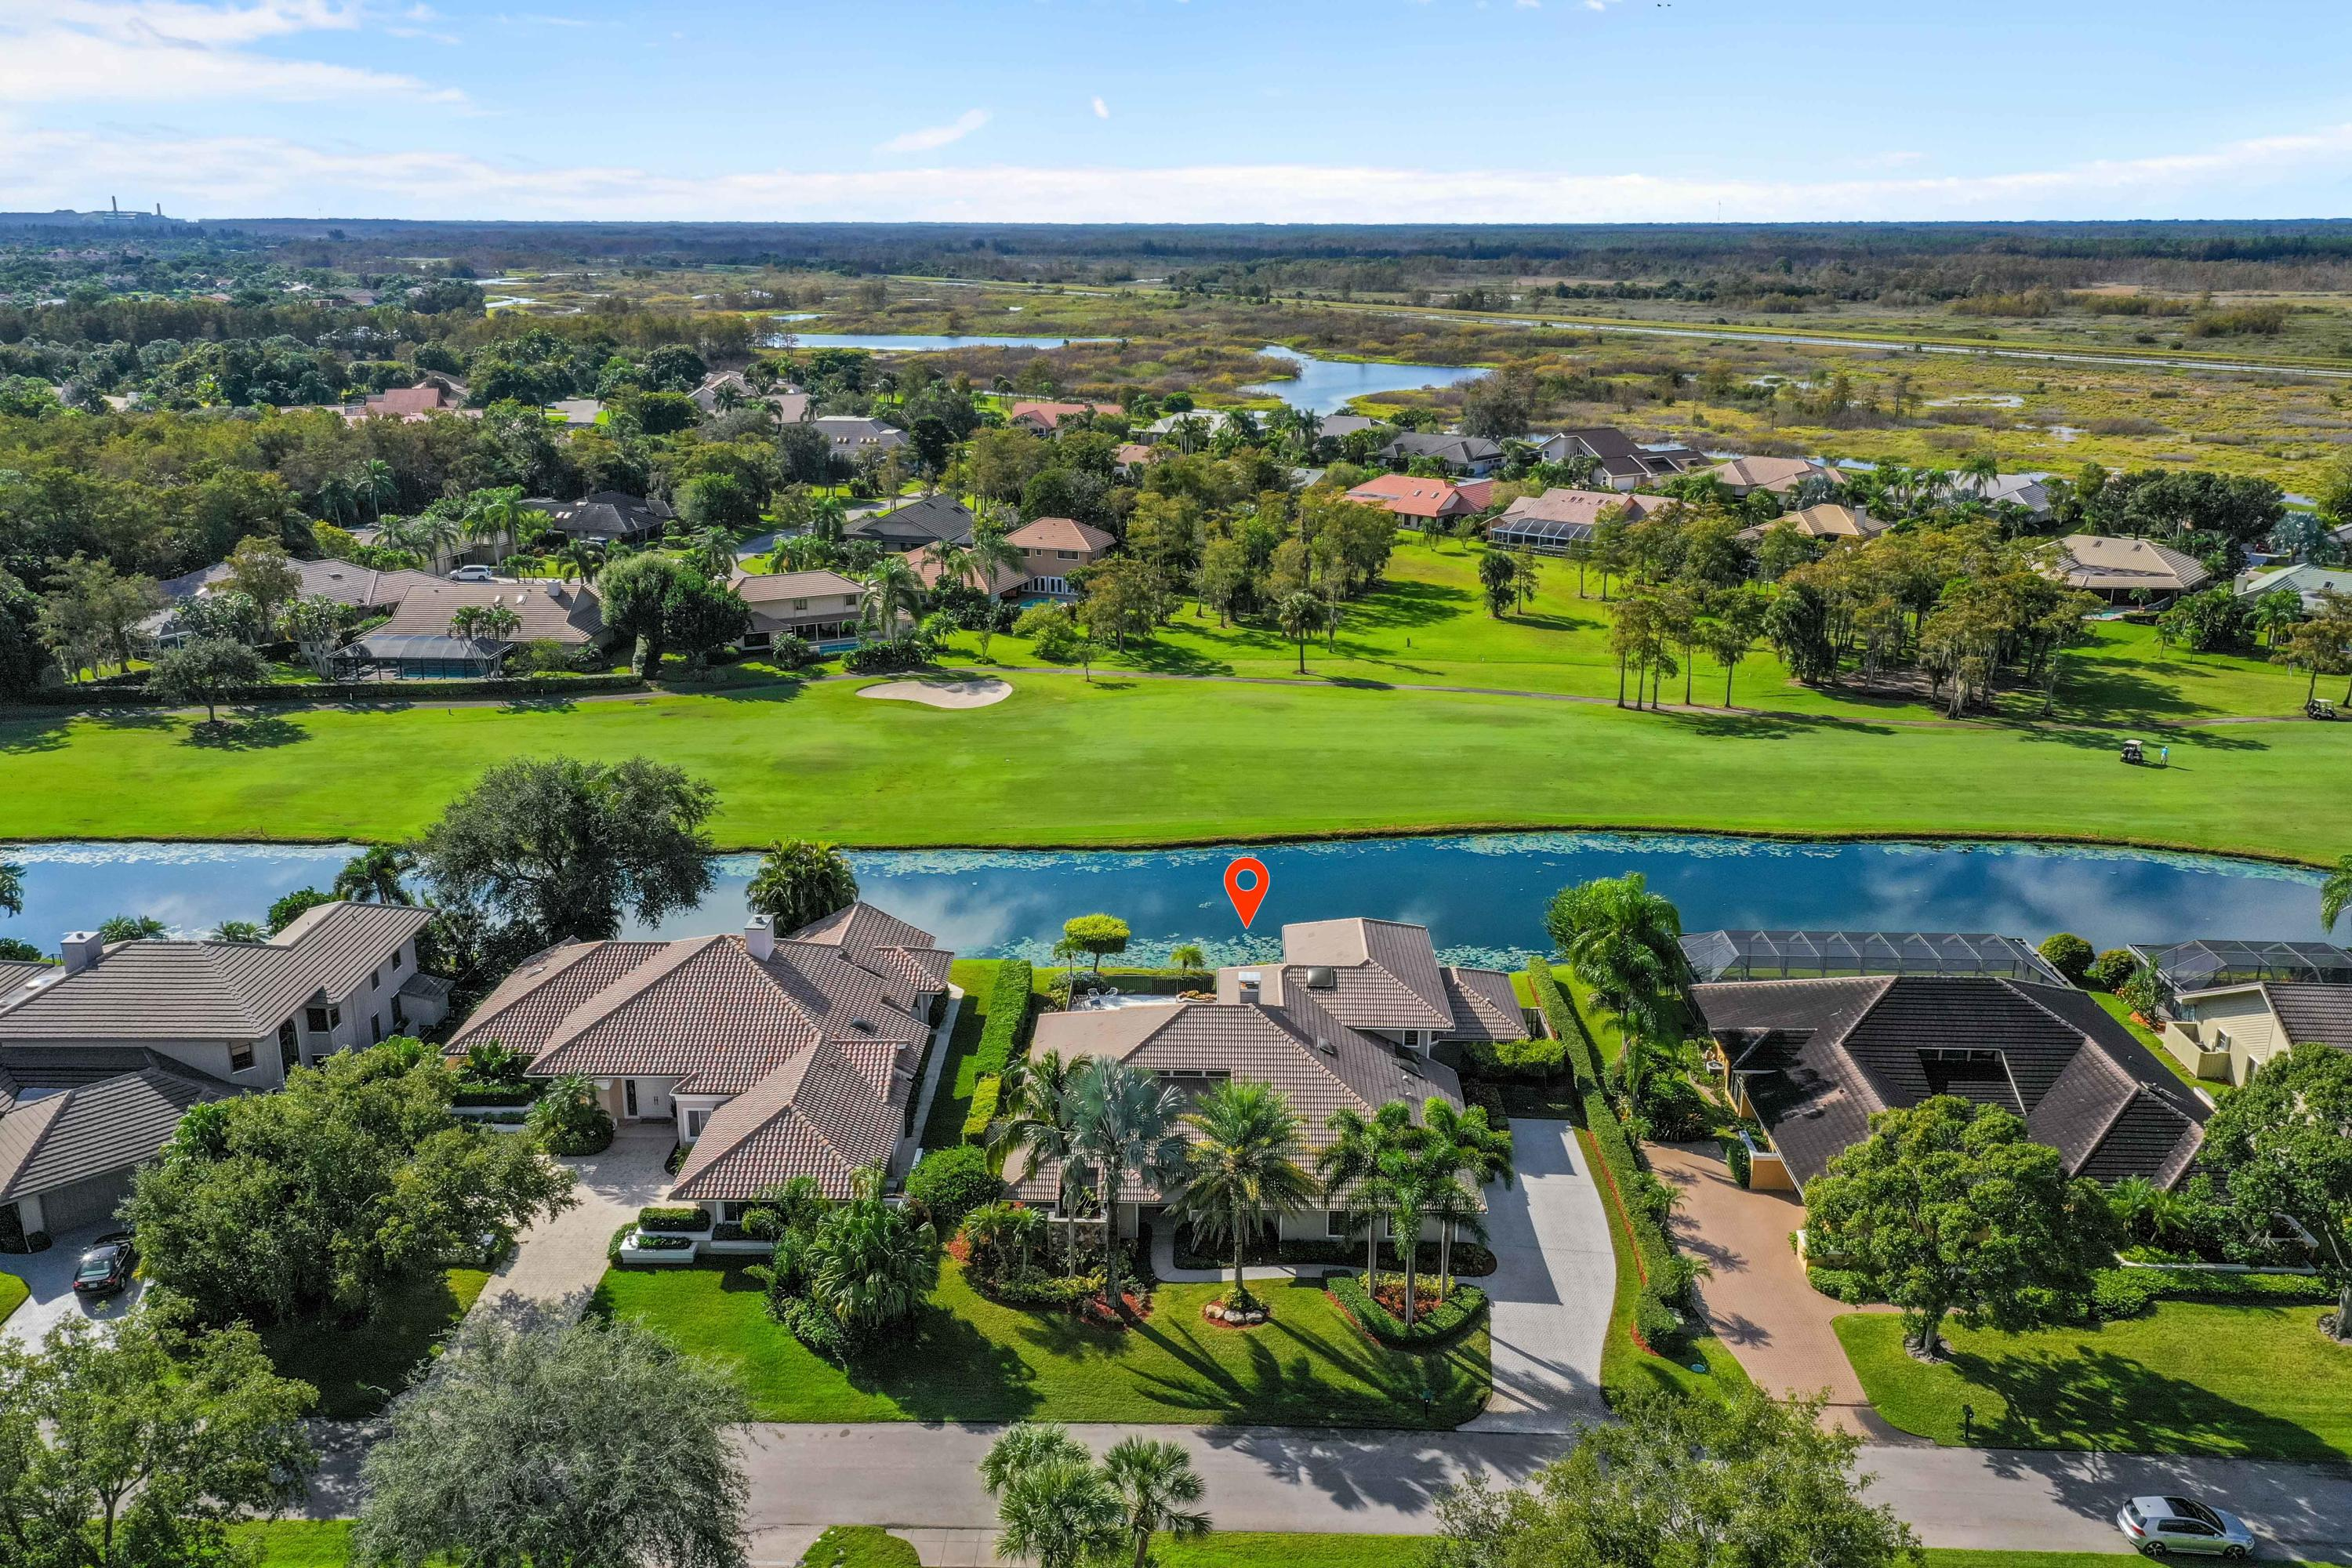 PGA NATIONAL HOMES